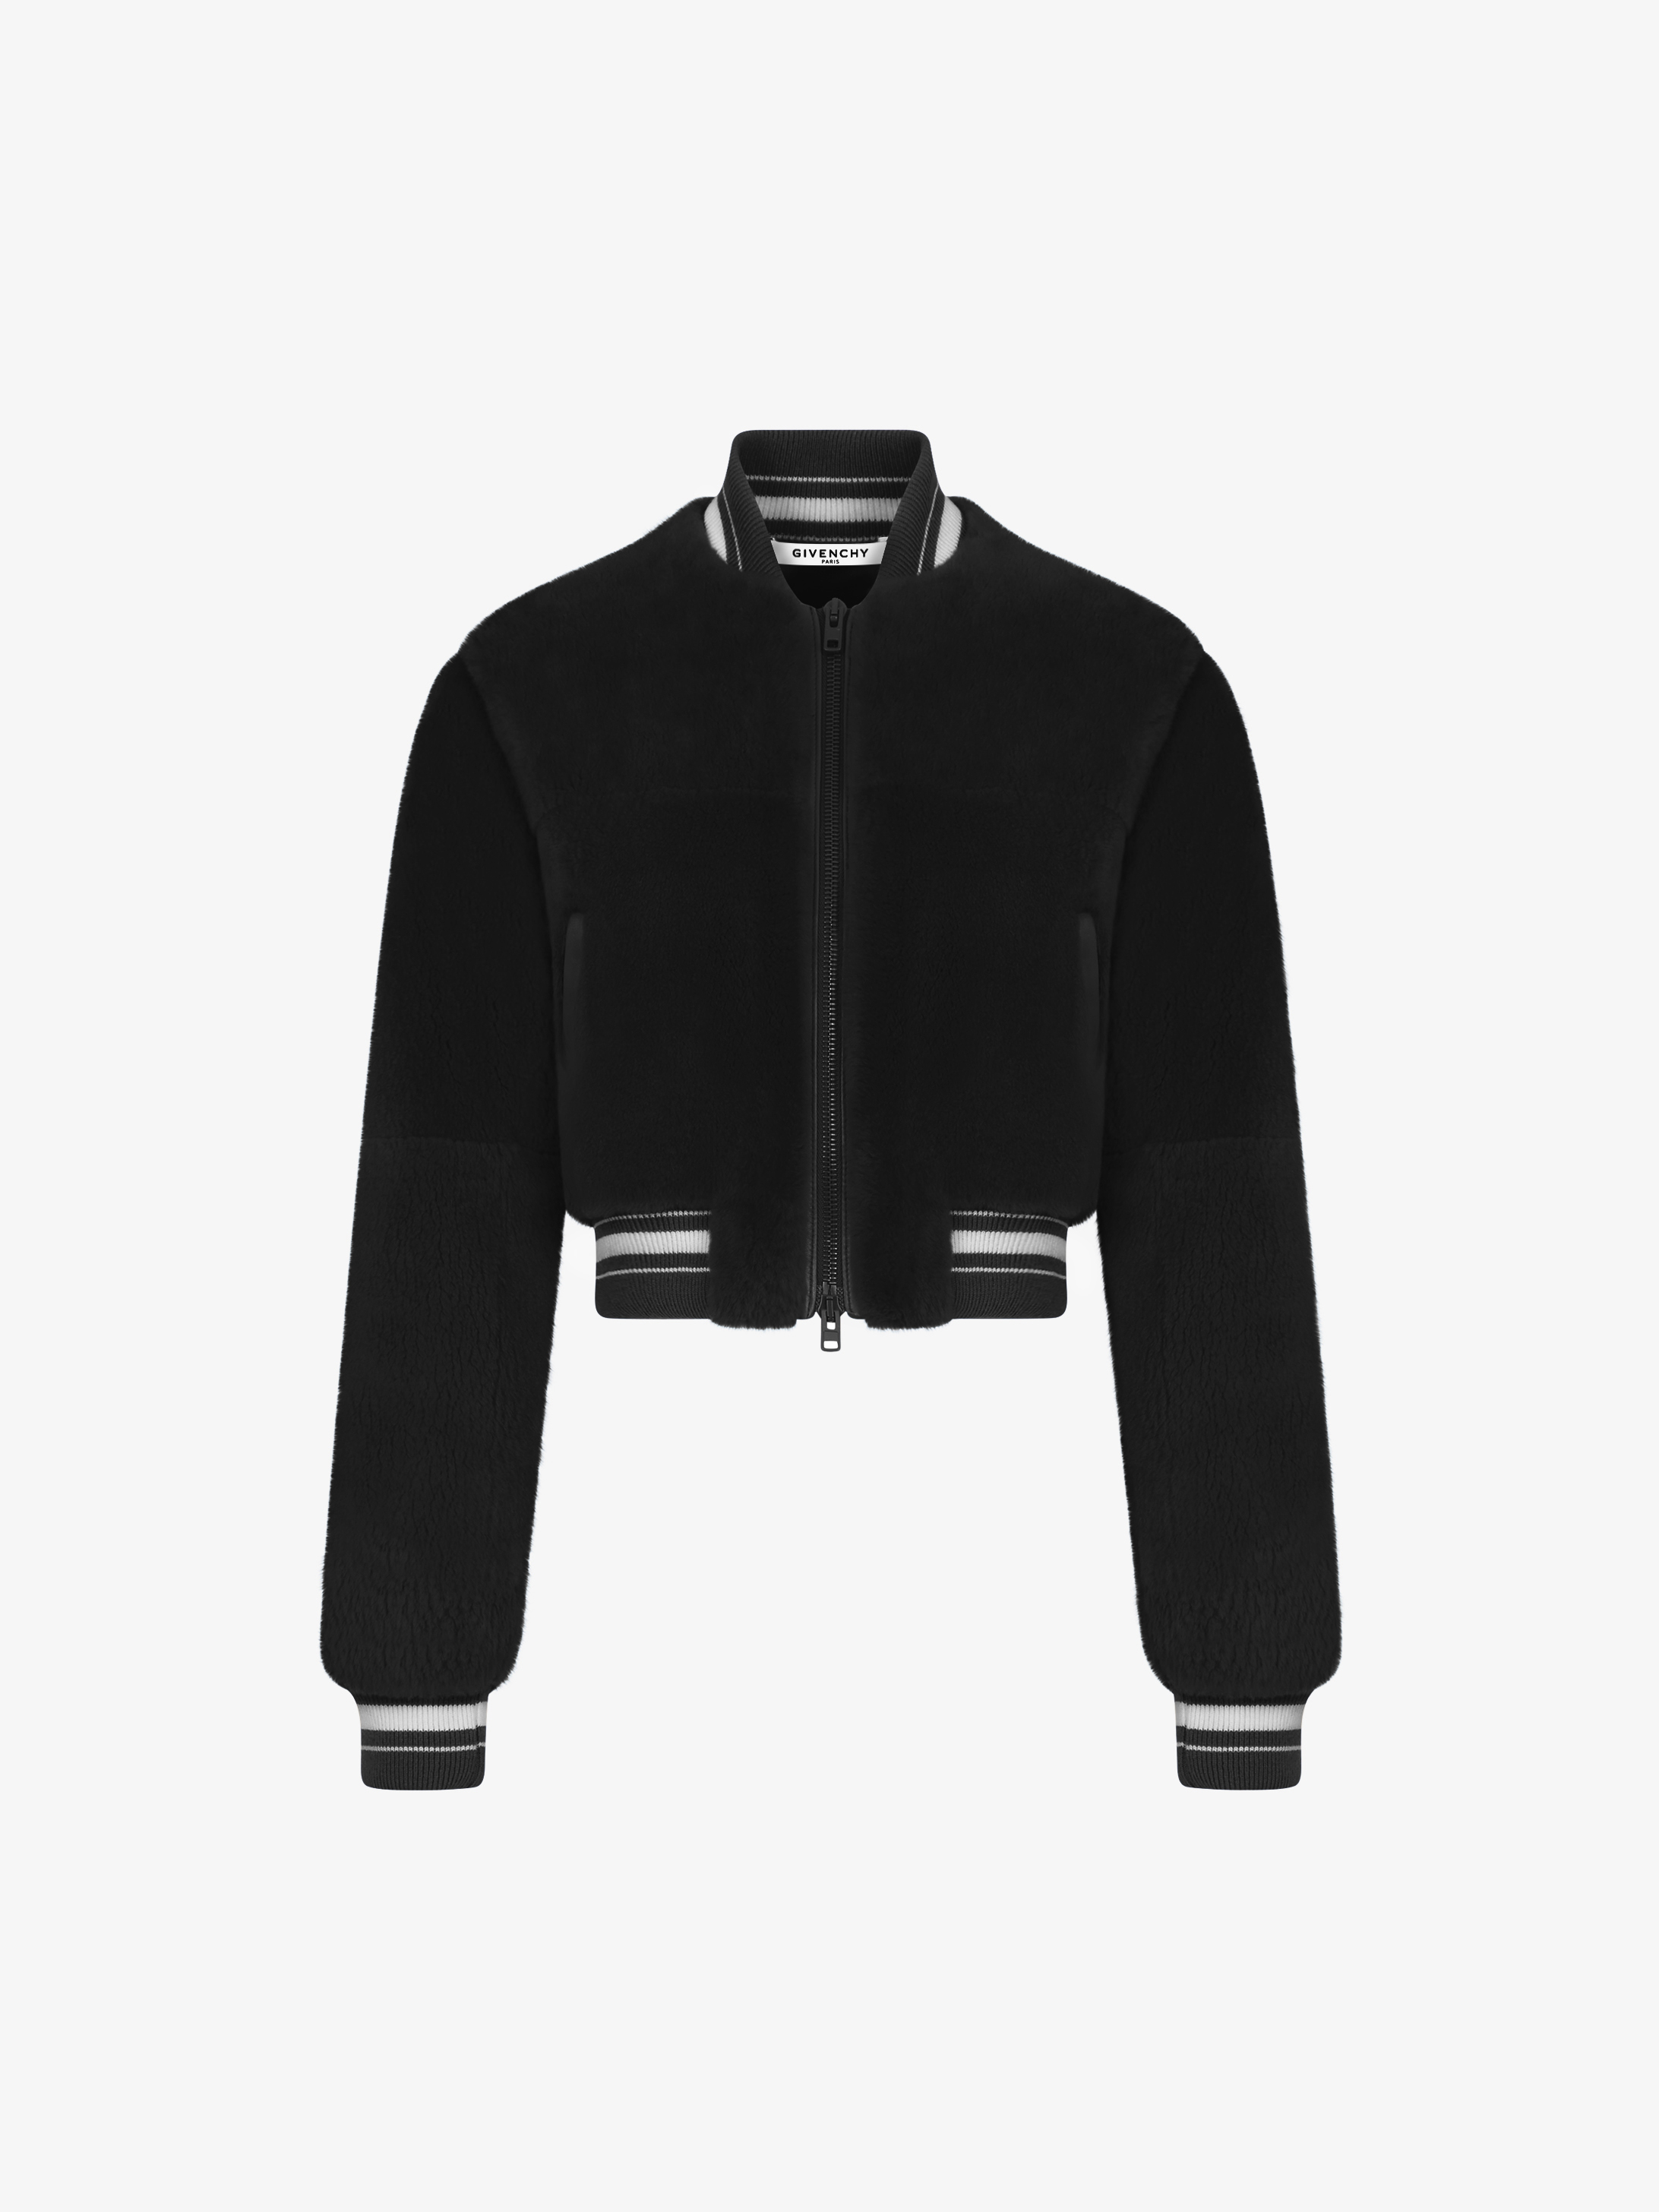 GIVENCHY PARIS bomber jacket in beaver